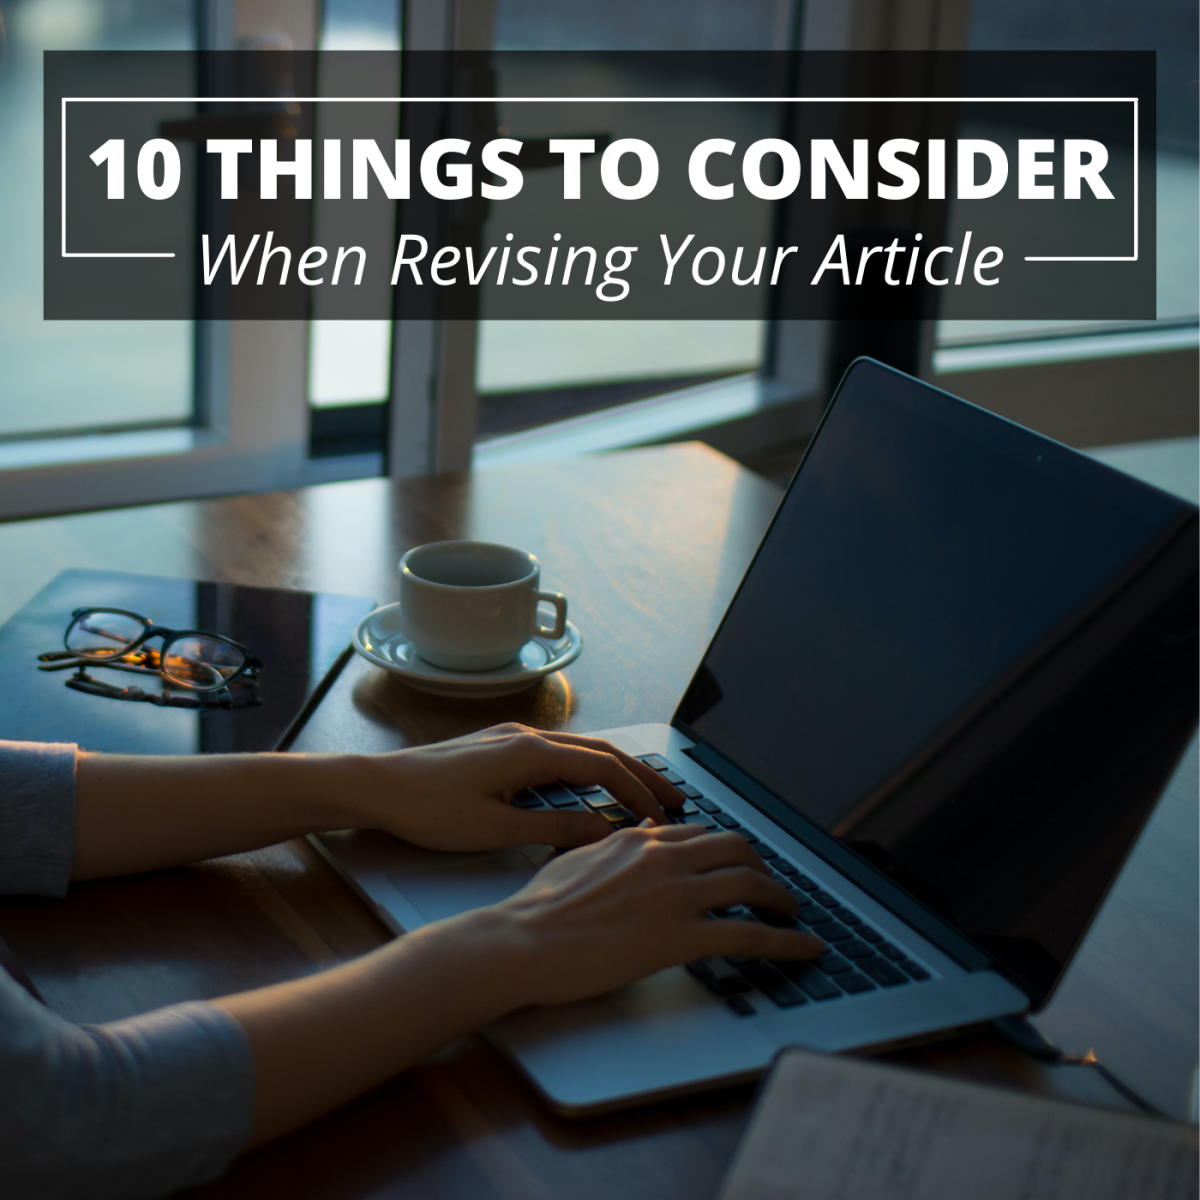 Having a revision plan can help you make more impactful updates to your articles and blog posts.